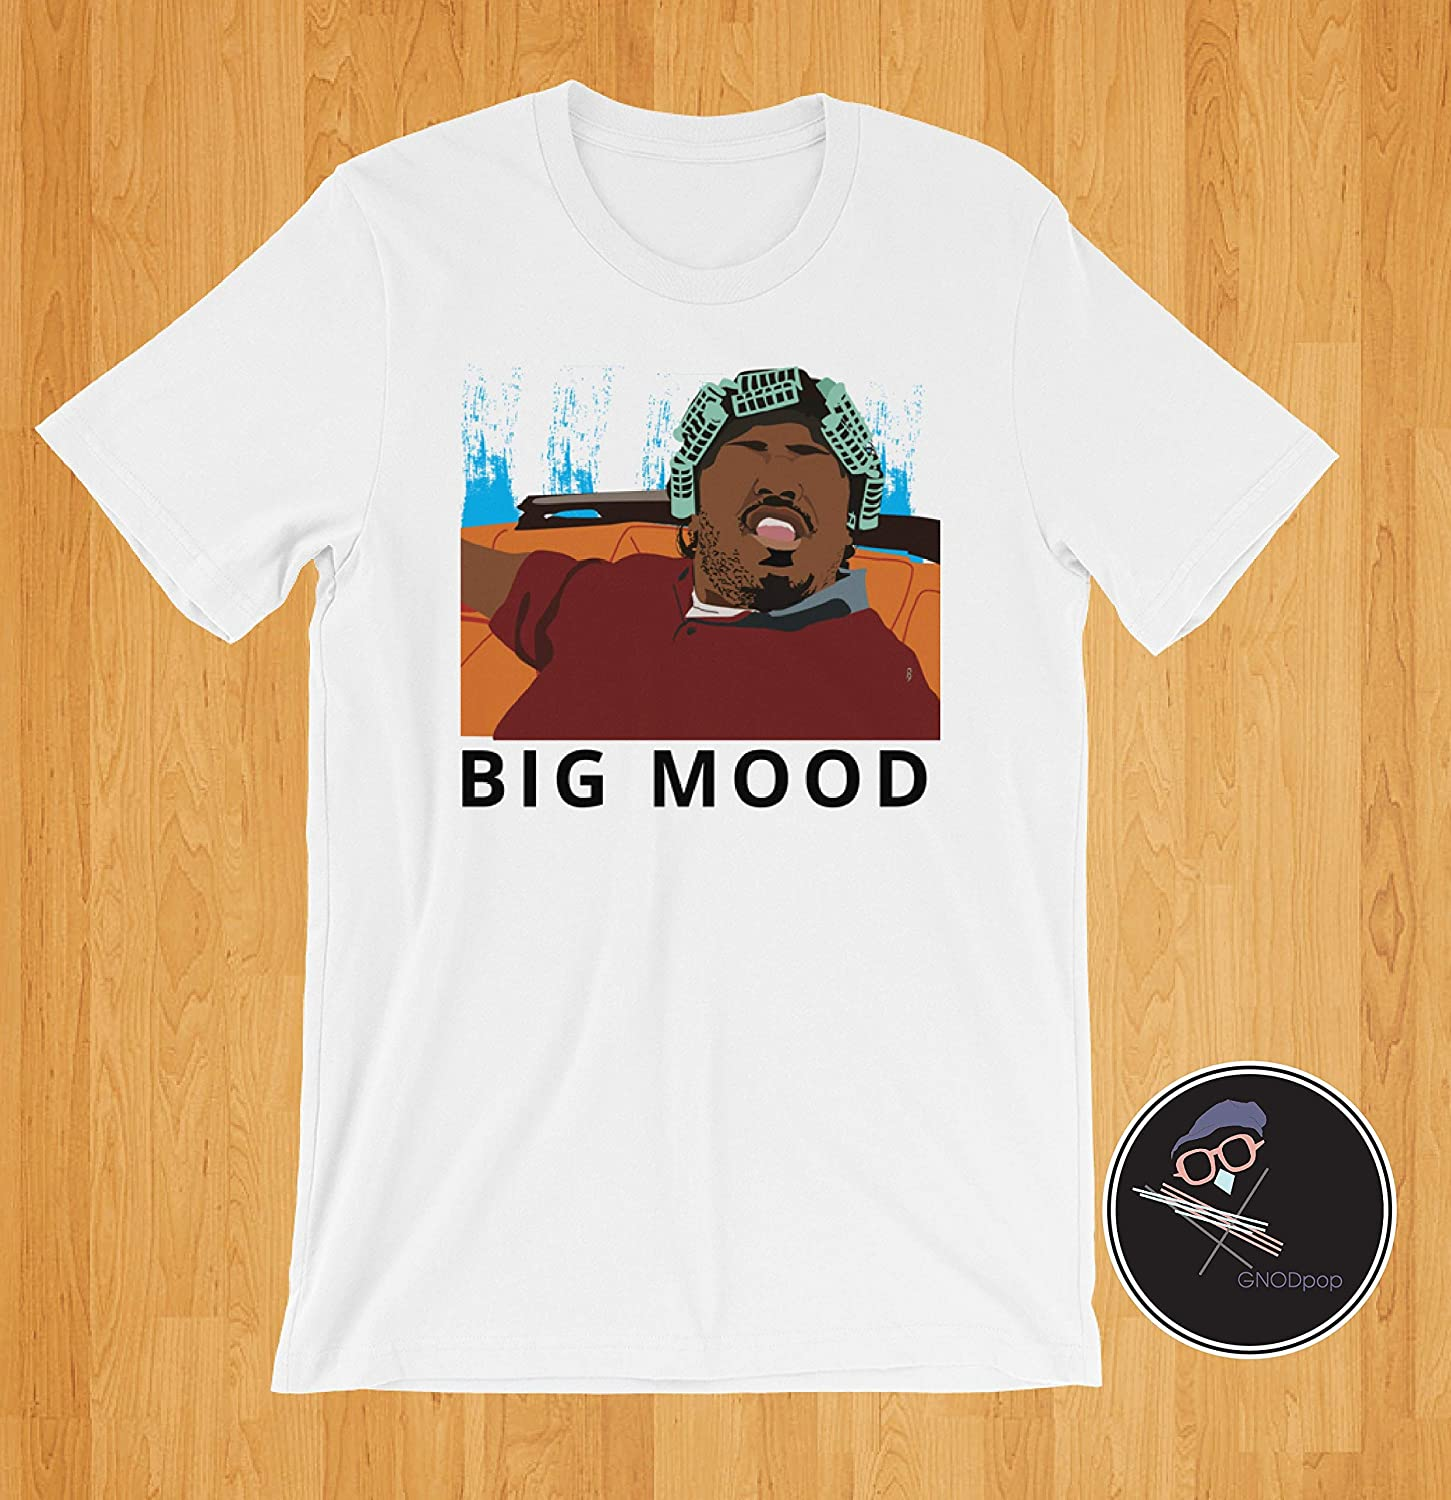 Friday Big Mood T-shirt From 90's Clothing, Classic Movie Friday, Gift For Best Friend, Gift For Boyfriend, Husband, Wife